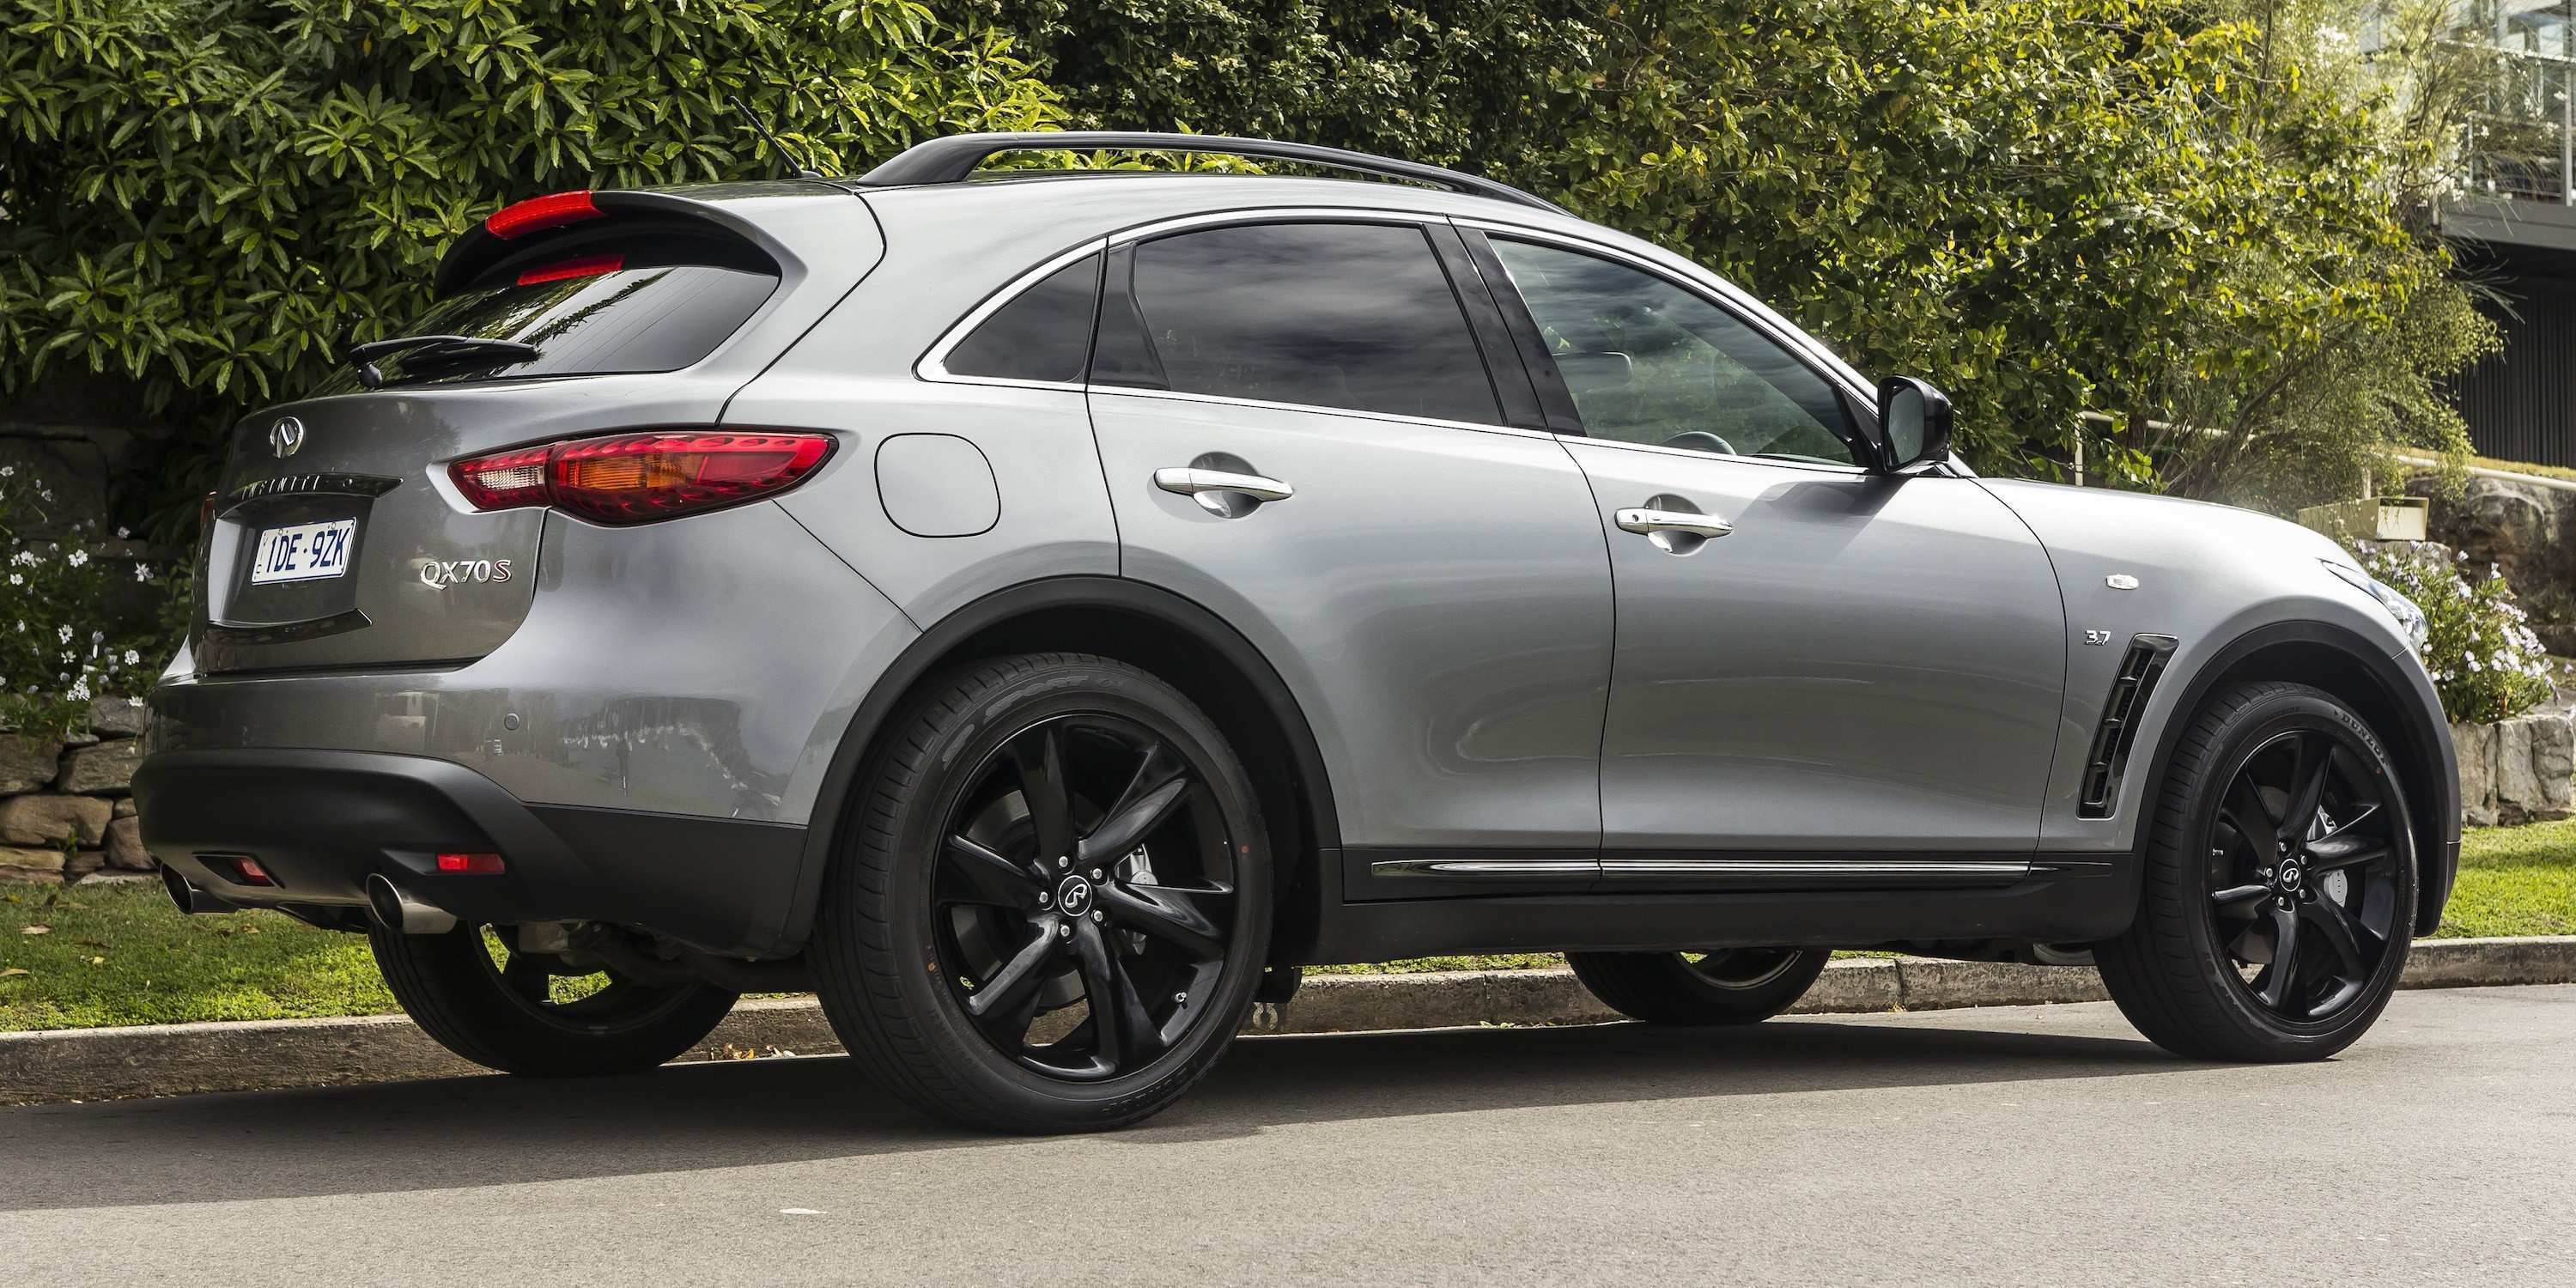 72 All New 2020 Infiniti QX70 Picture